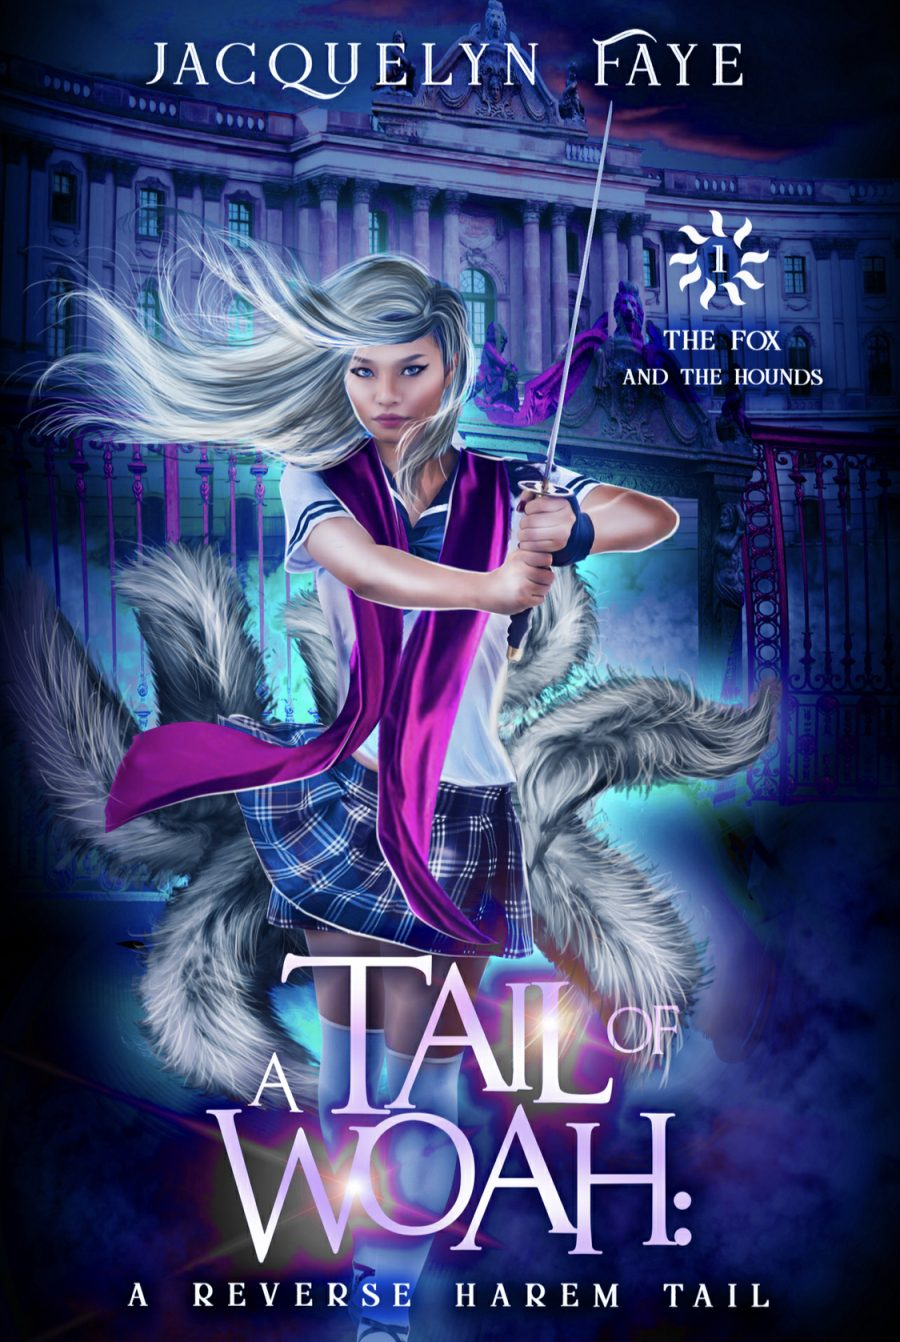 A Tail of Woah: A Reverse Harem Academy Tail by Jacquelyn Faye - A Book Review #BookReview #RH #WhyChoose #Paranormal #Academy #5Star #KindleUnlimited